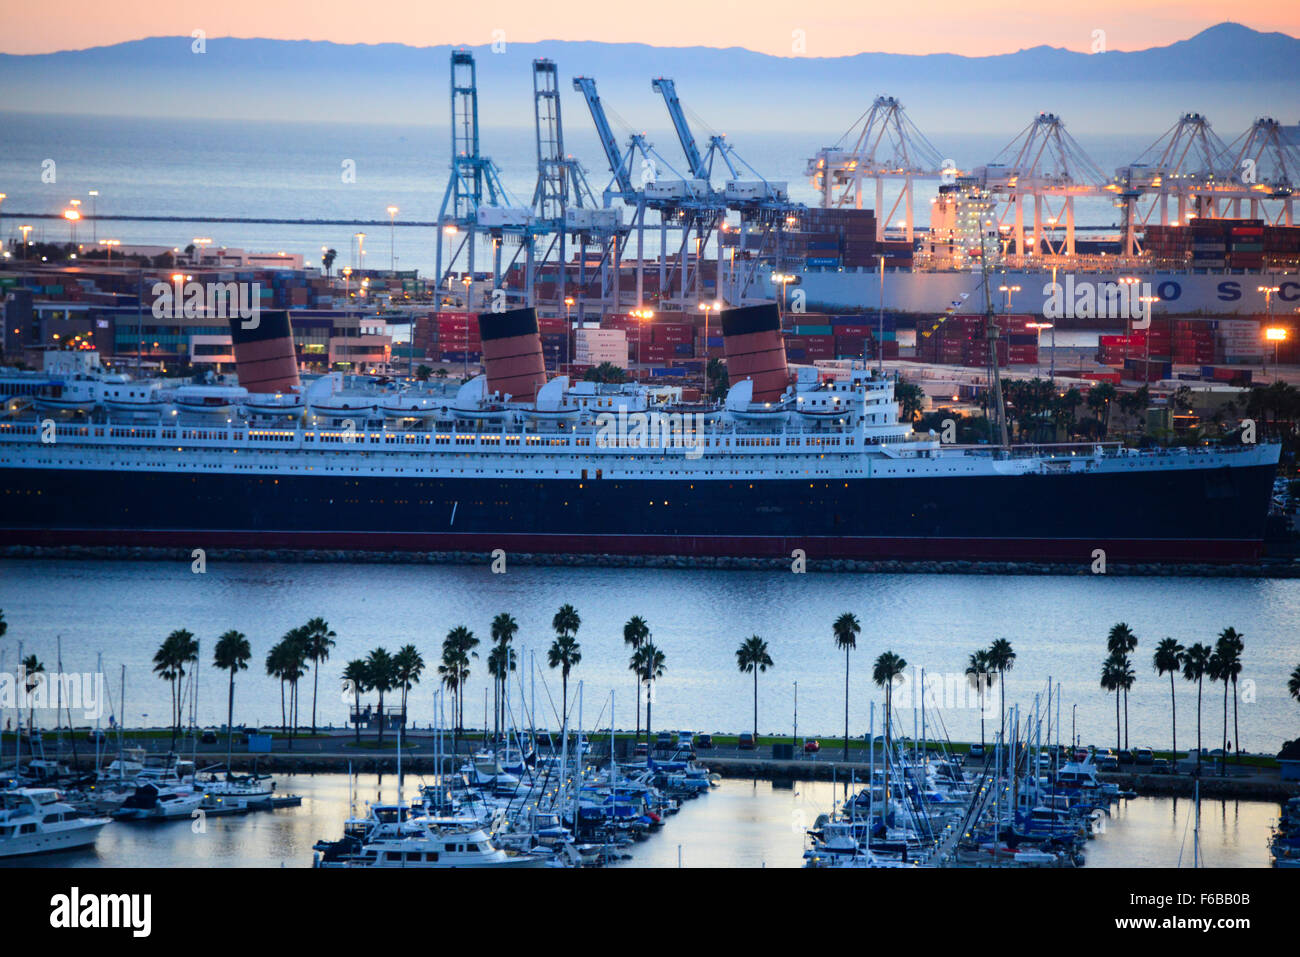 Queen Mary historic ocean liner in harbor at Long Beach Southern California USA - Stock Image